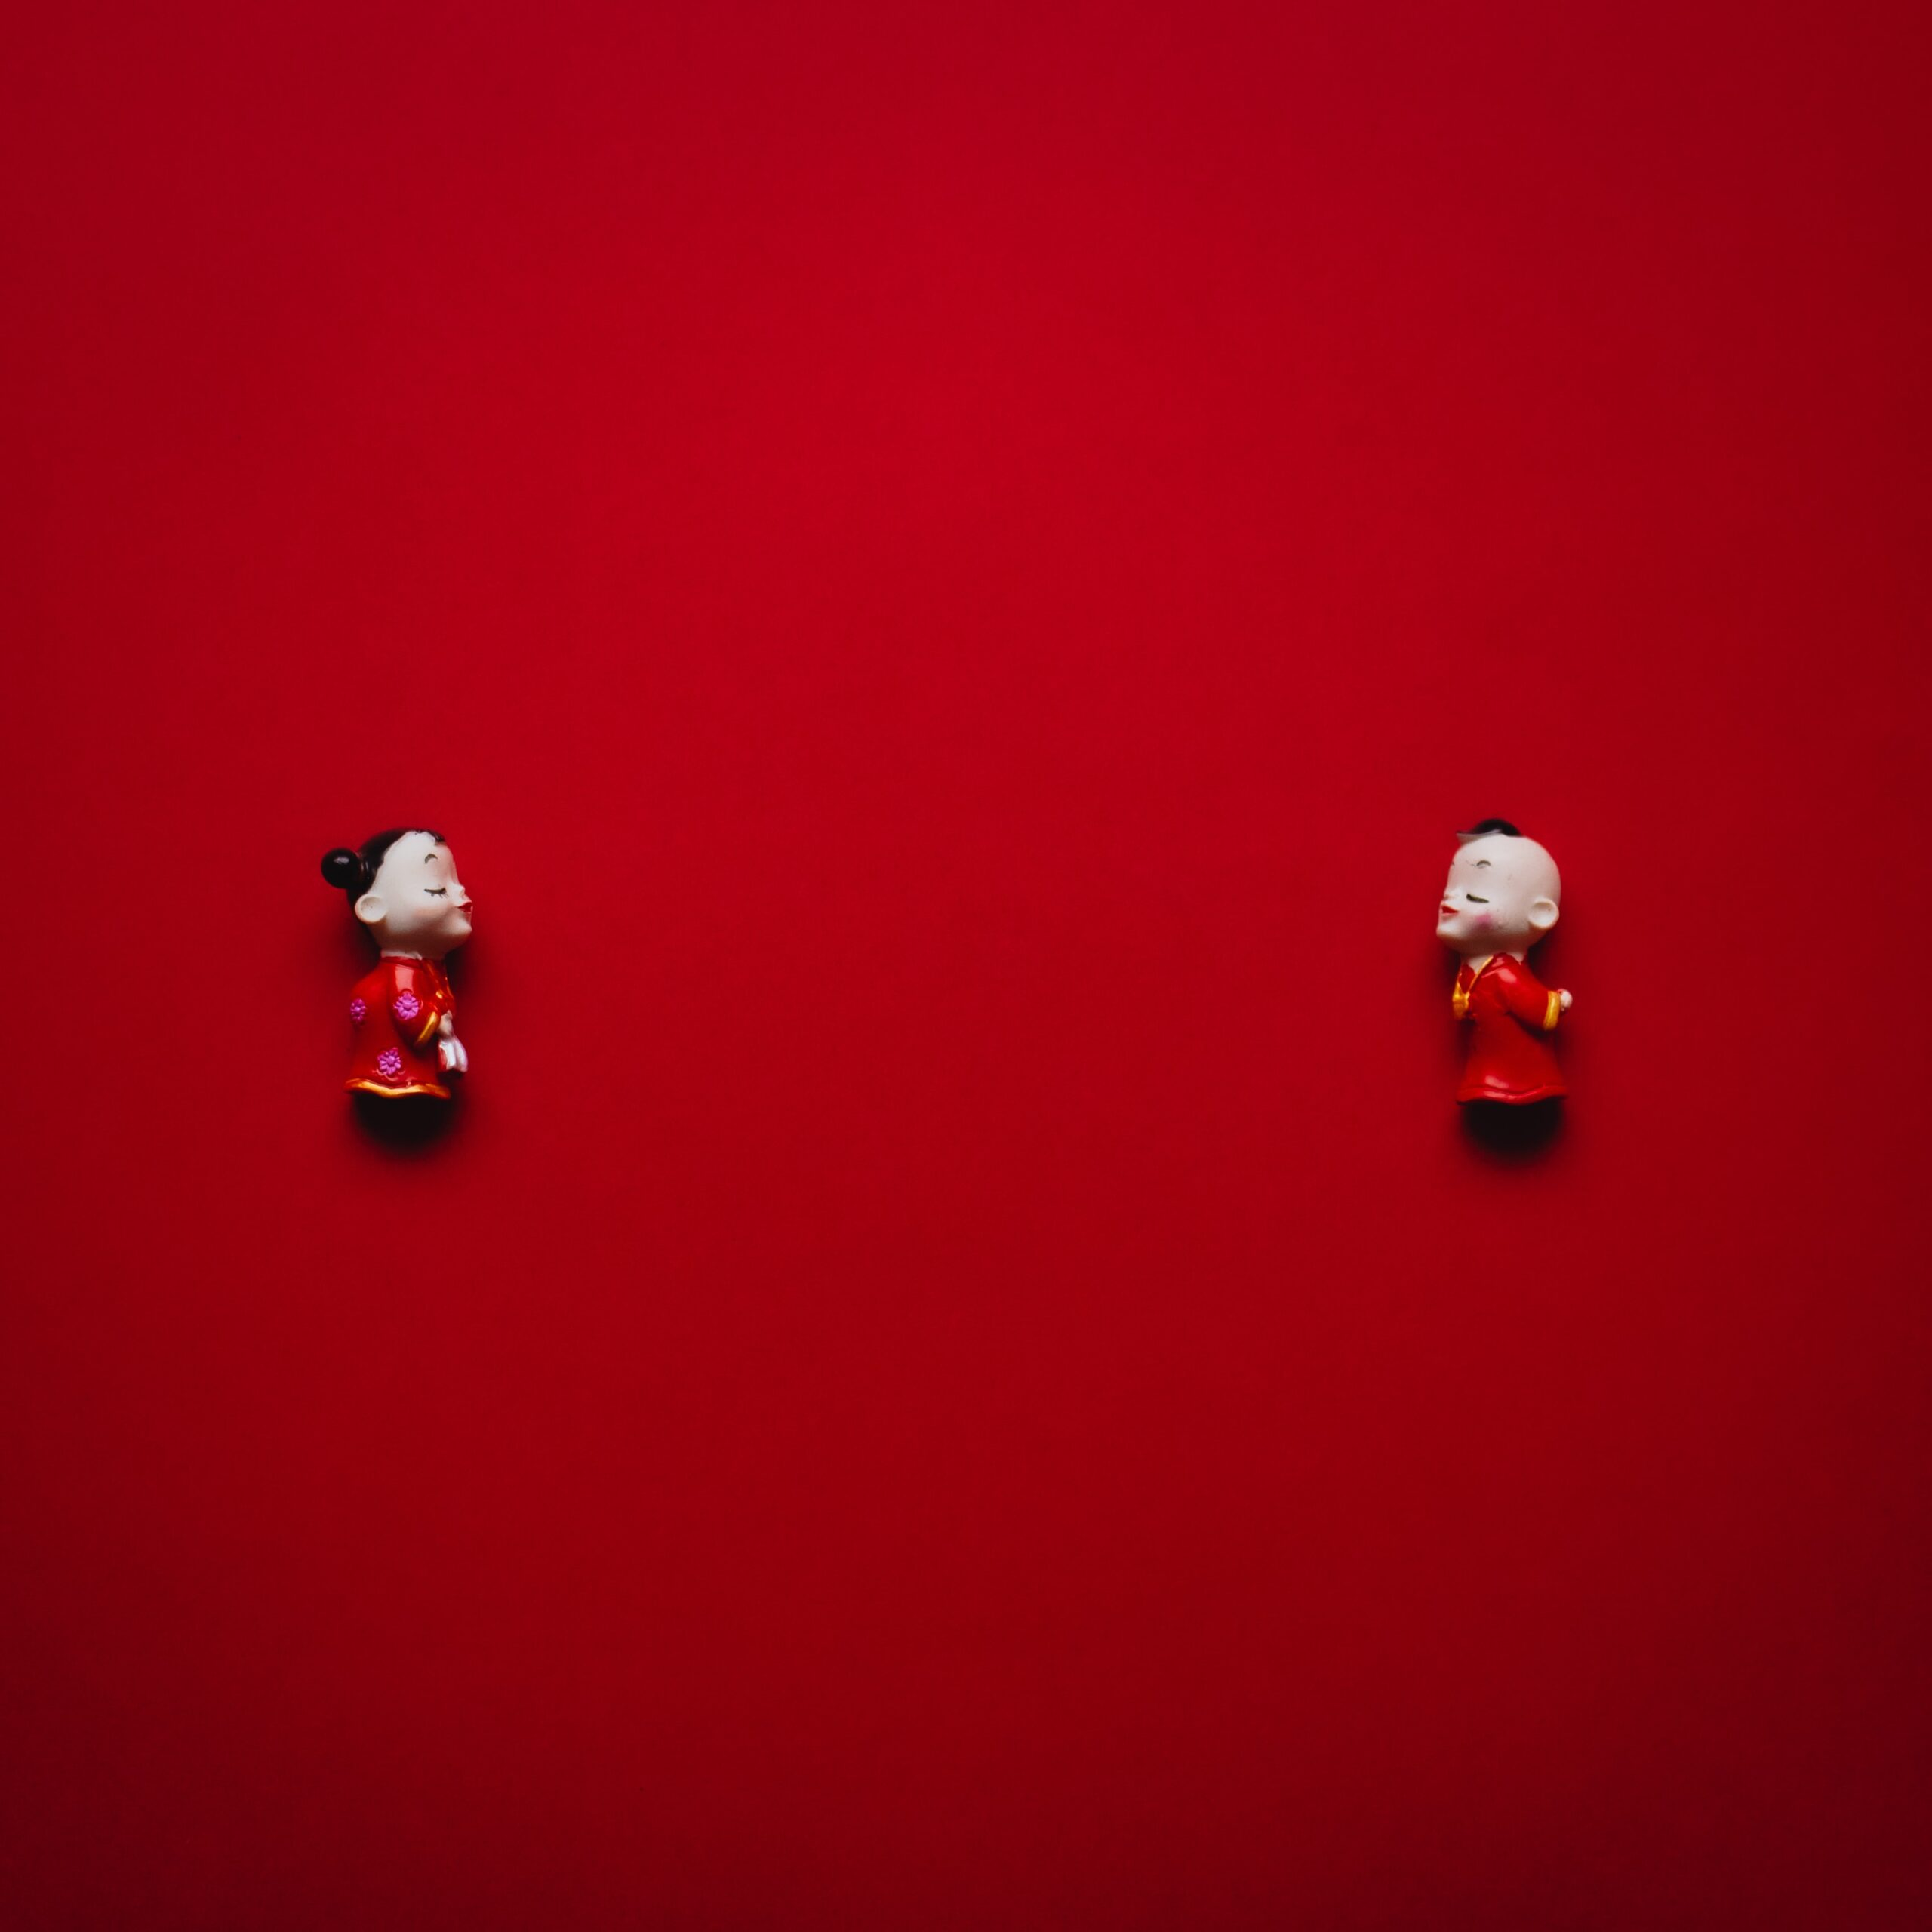 2 dolls facing each other on a red background